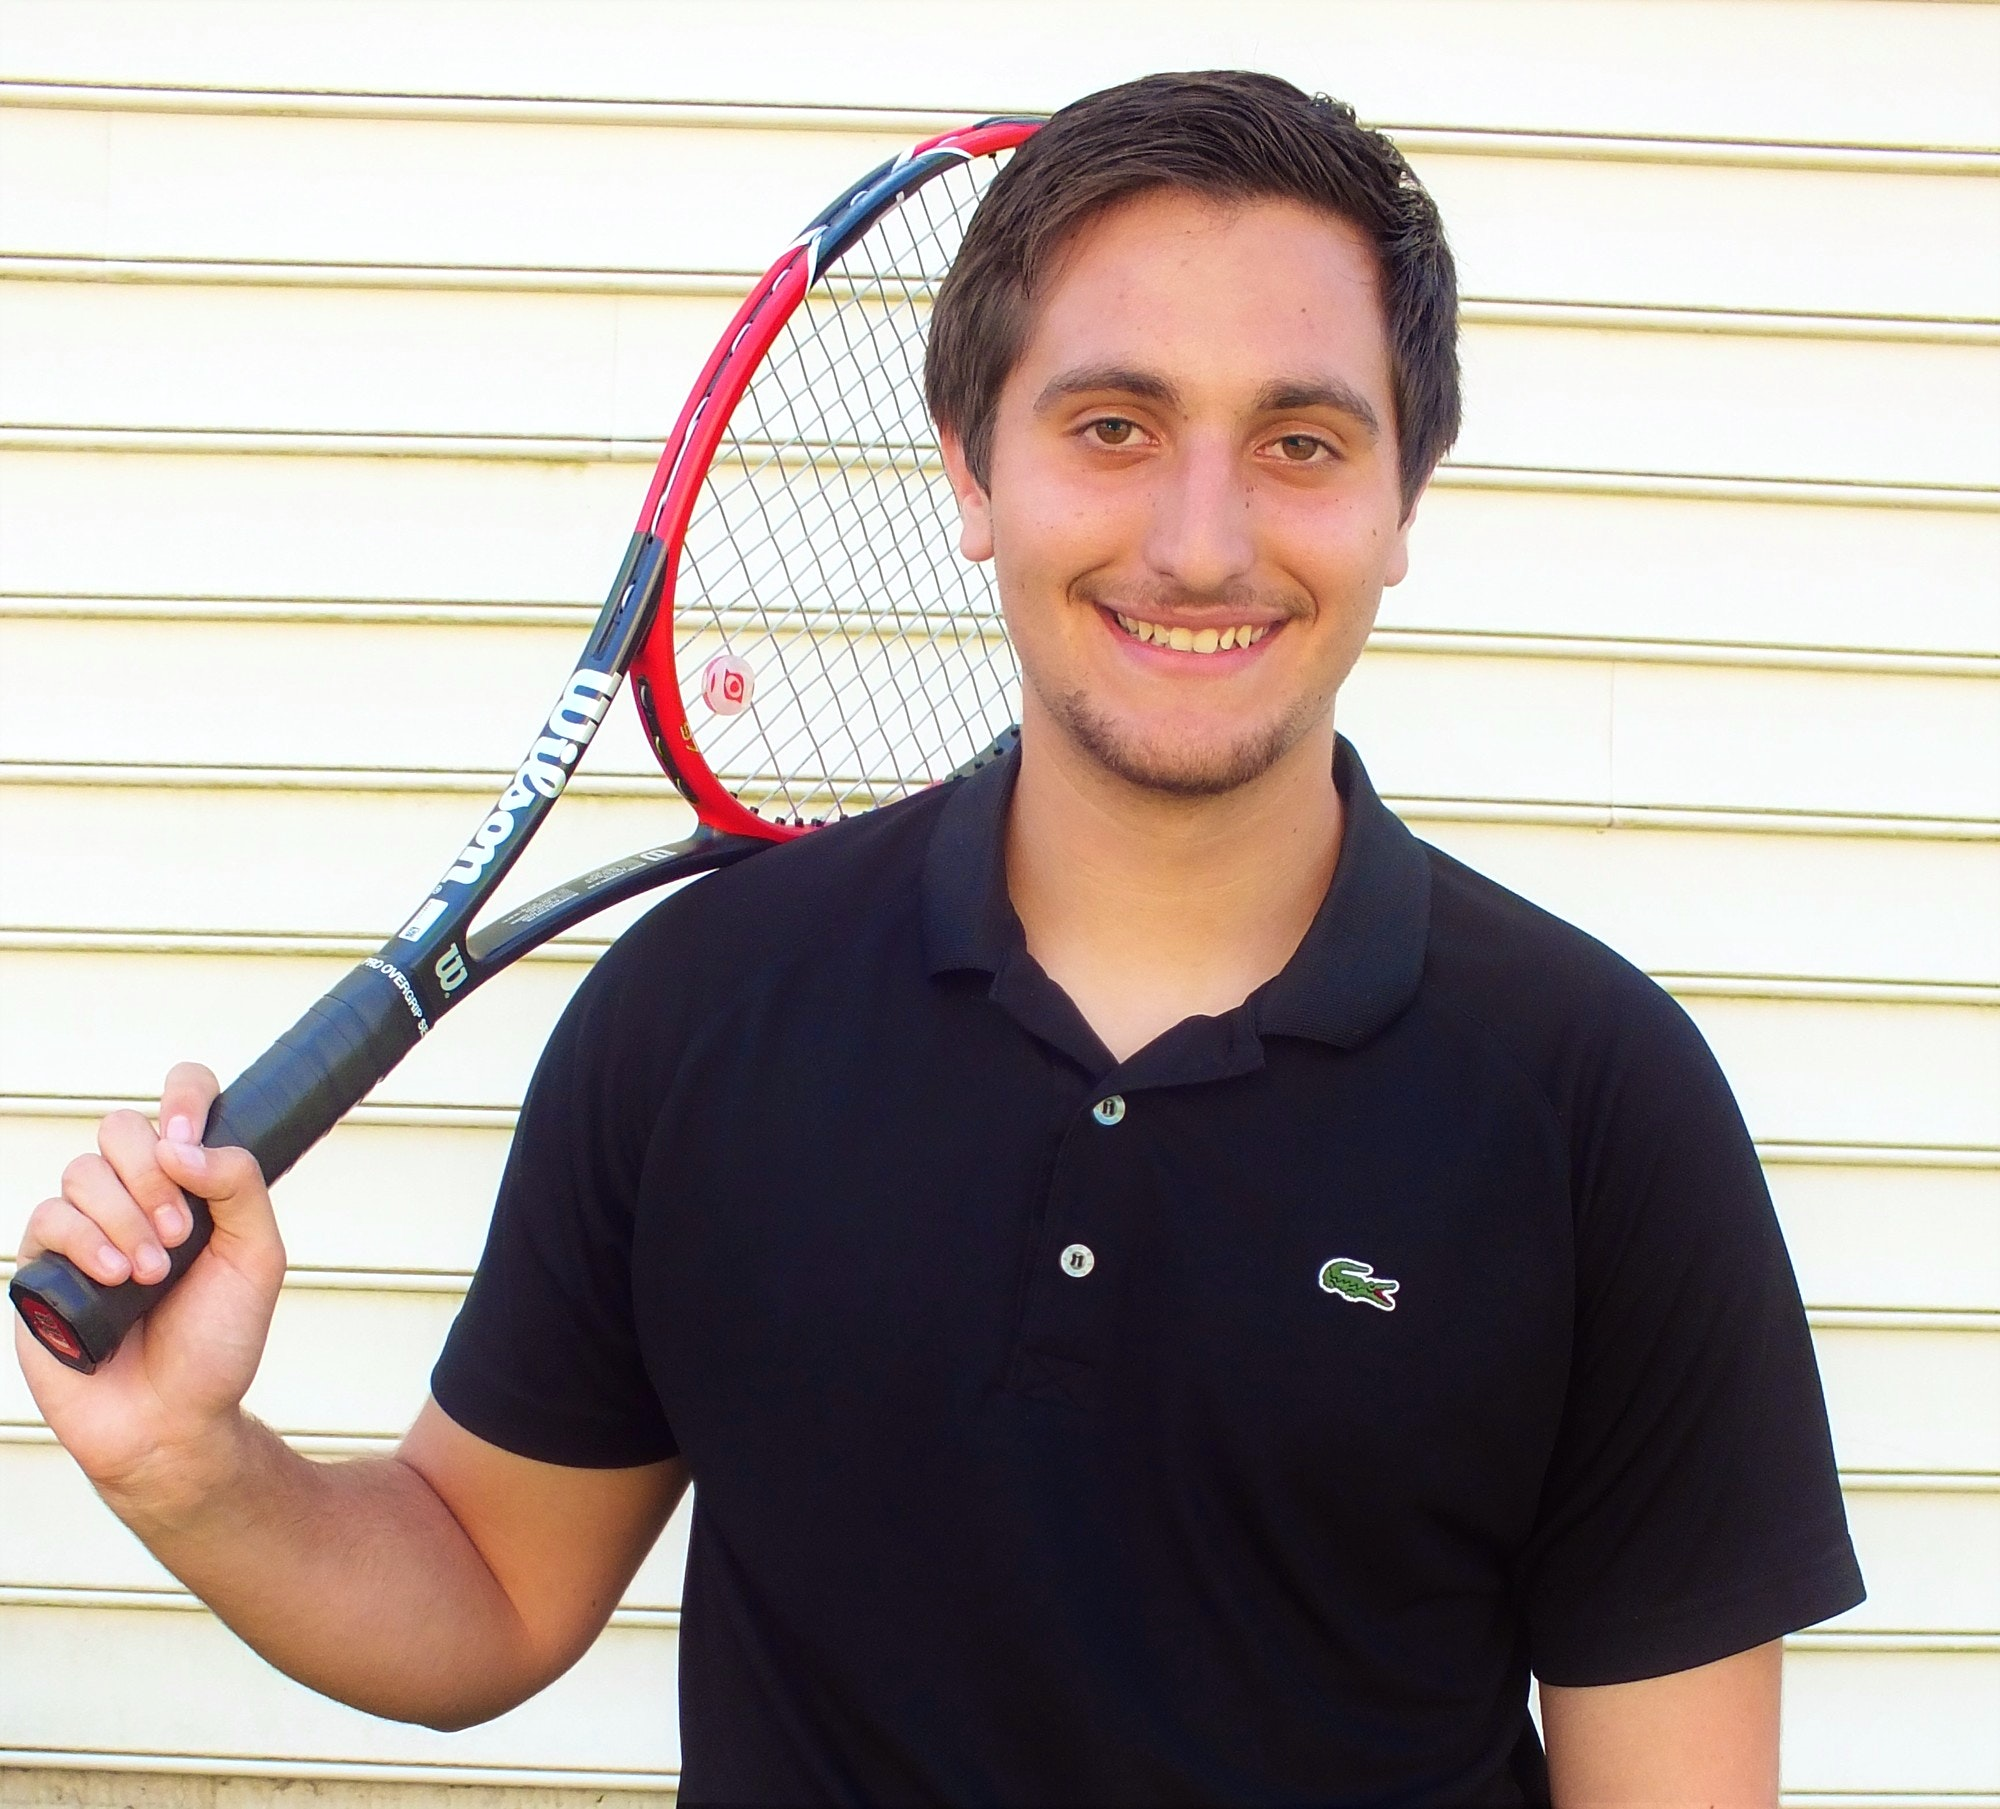 Alexander K. teaches tennis lessons in Nottingham, MD